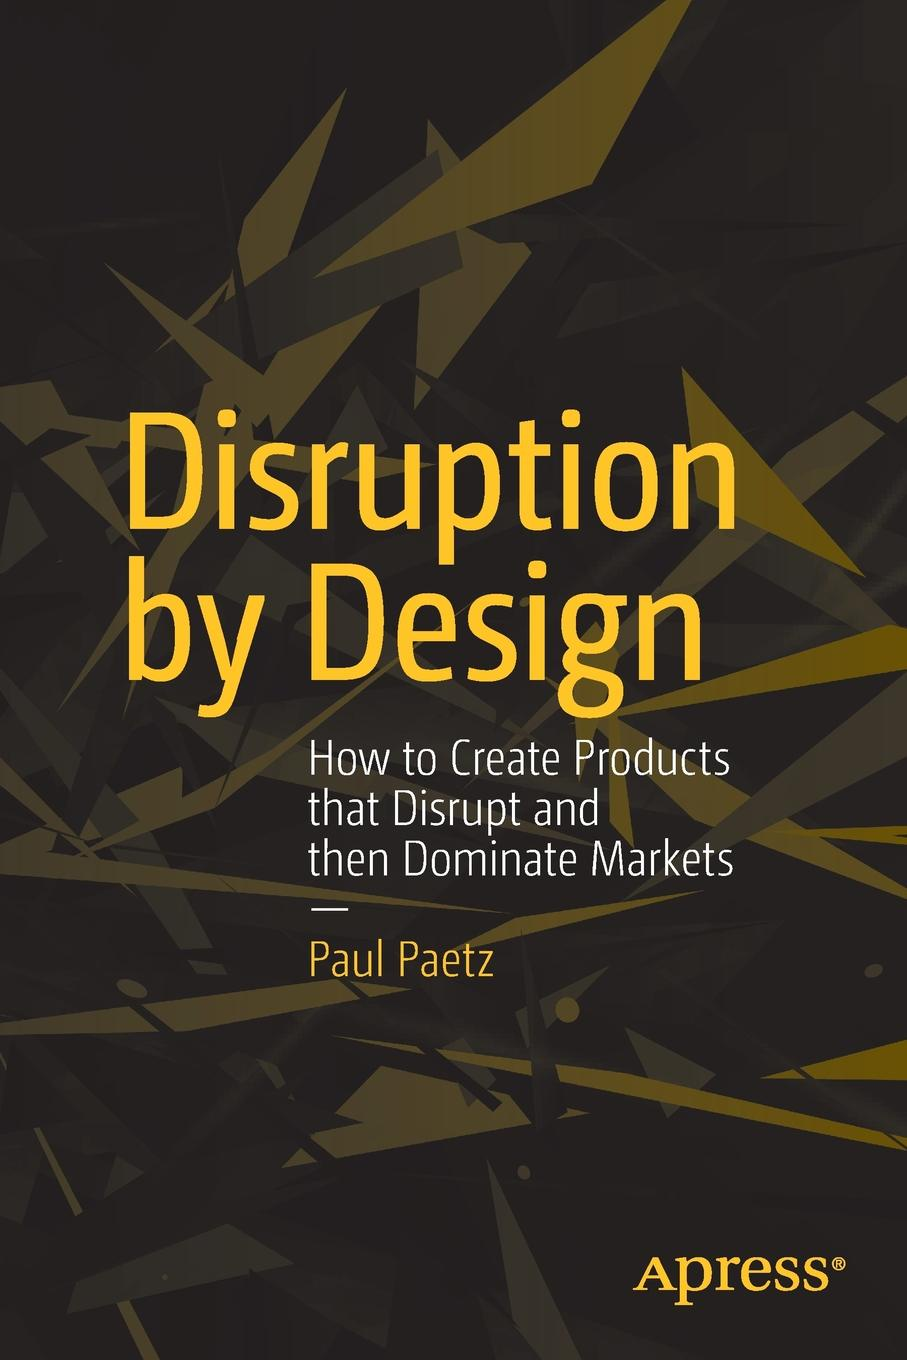 лучшая цена Paul Paetz Disruption by Design. How to Create Products that Disrupt and then Dominate Markets